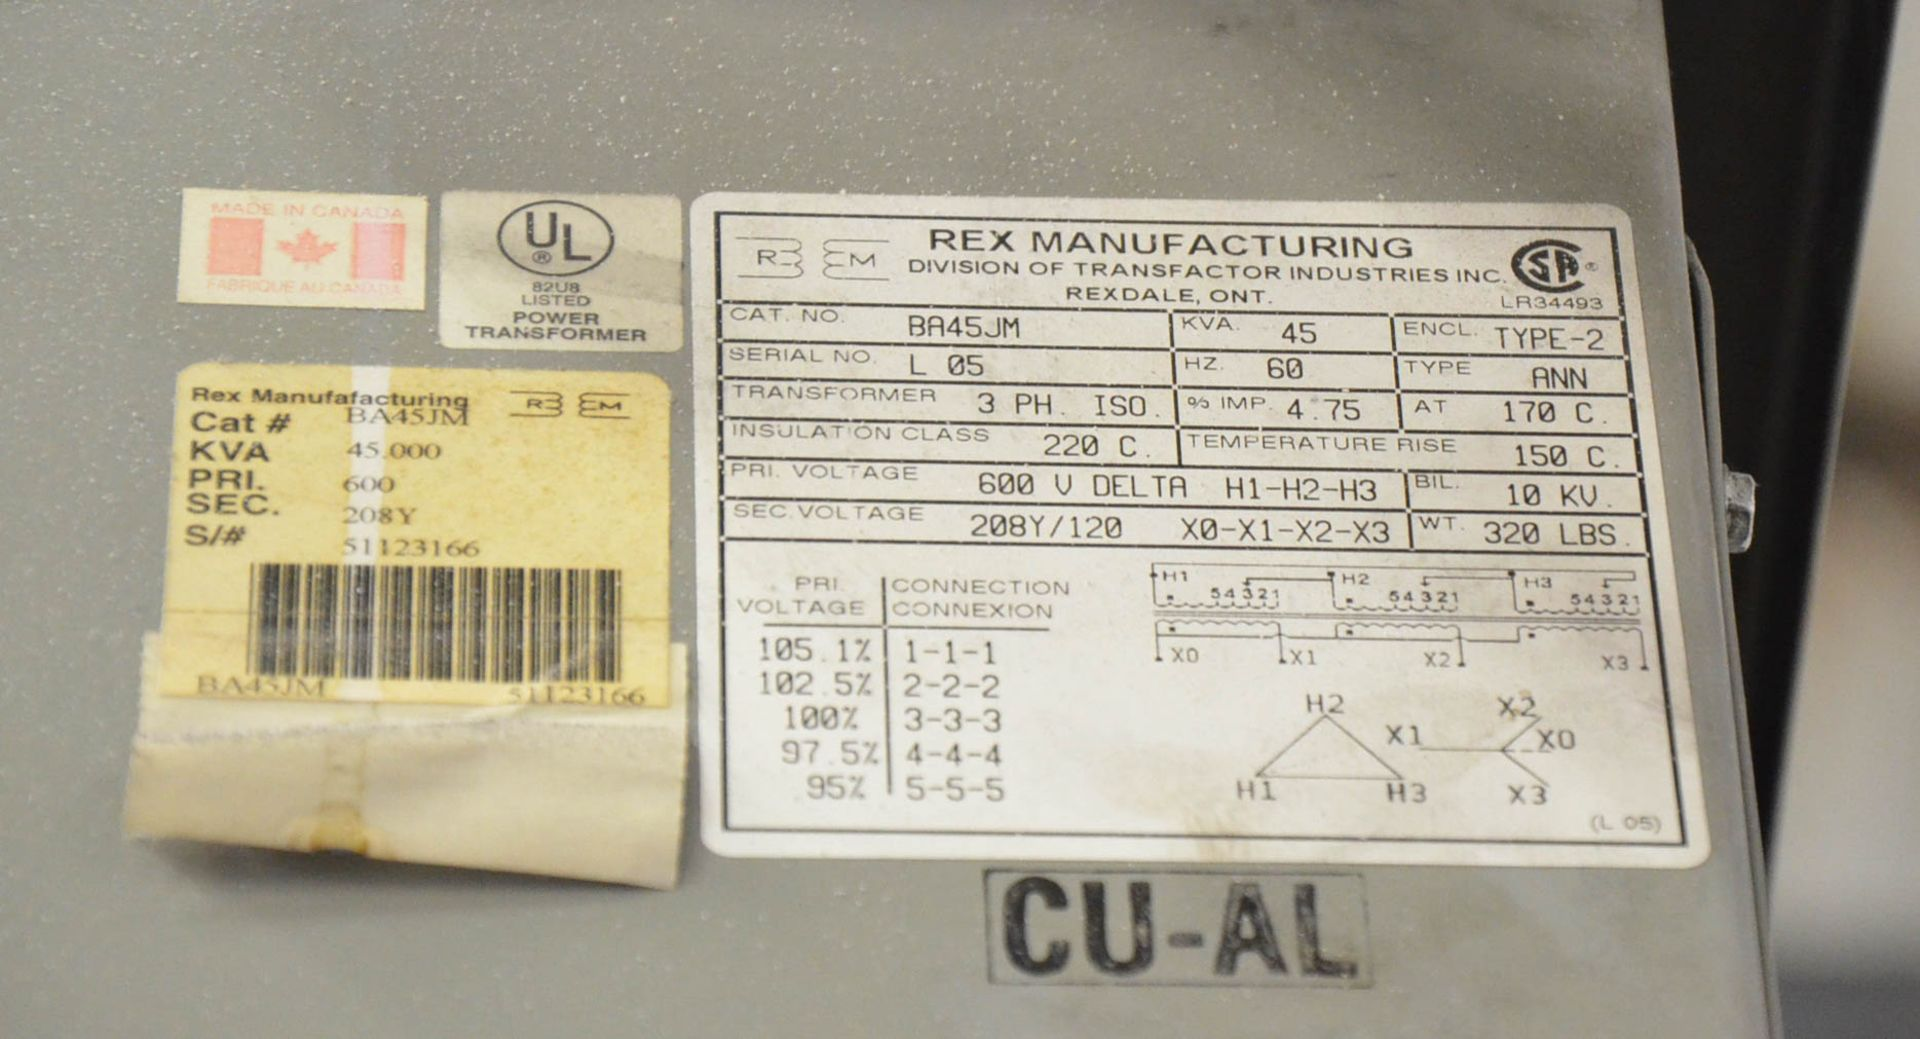 REX 45KVA/600-208-120V/3PH/60HZ TRANSFORMER (CI) [RIGGING FEES FOR LOT #65 - $50 USD PLUS APPLICABLE - Image 2 of 2